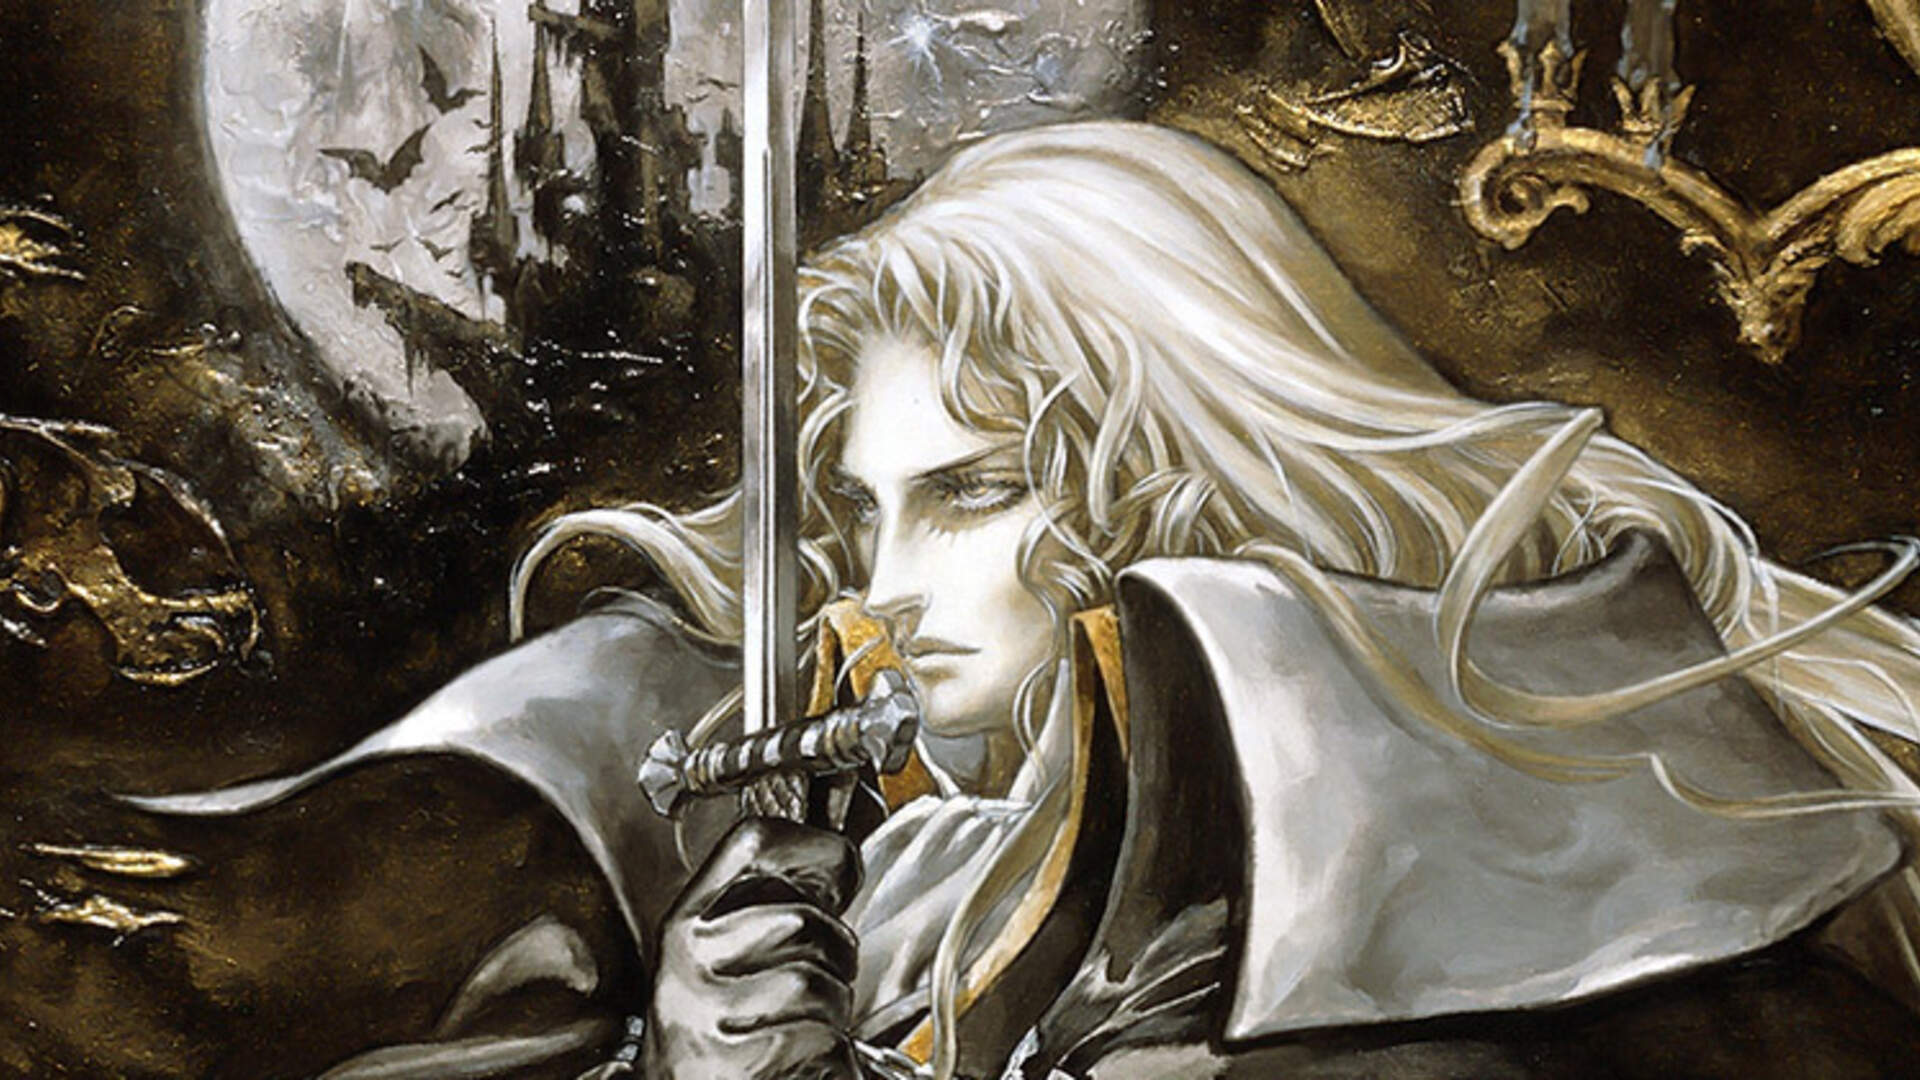 Castlevania: Symphony of the Night Deep Dive, Part 2: A Classic's Sublime Structure